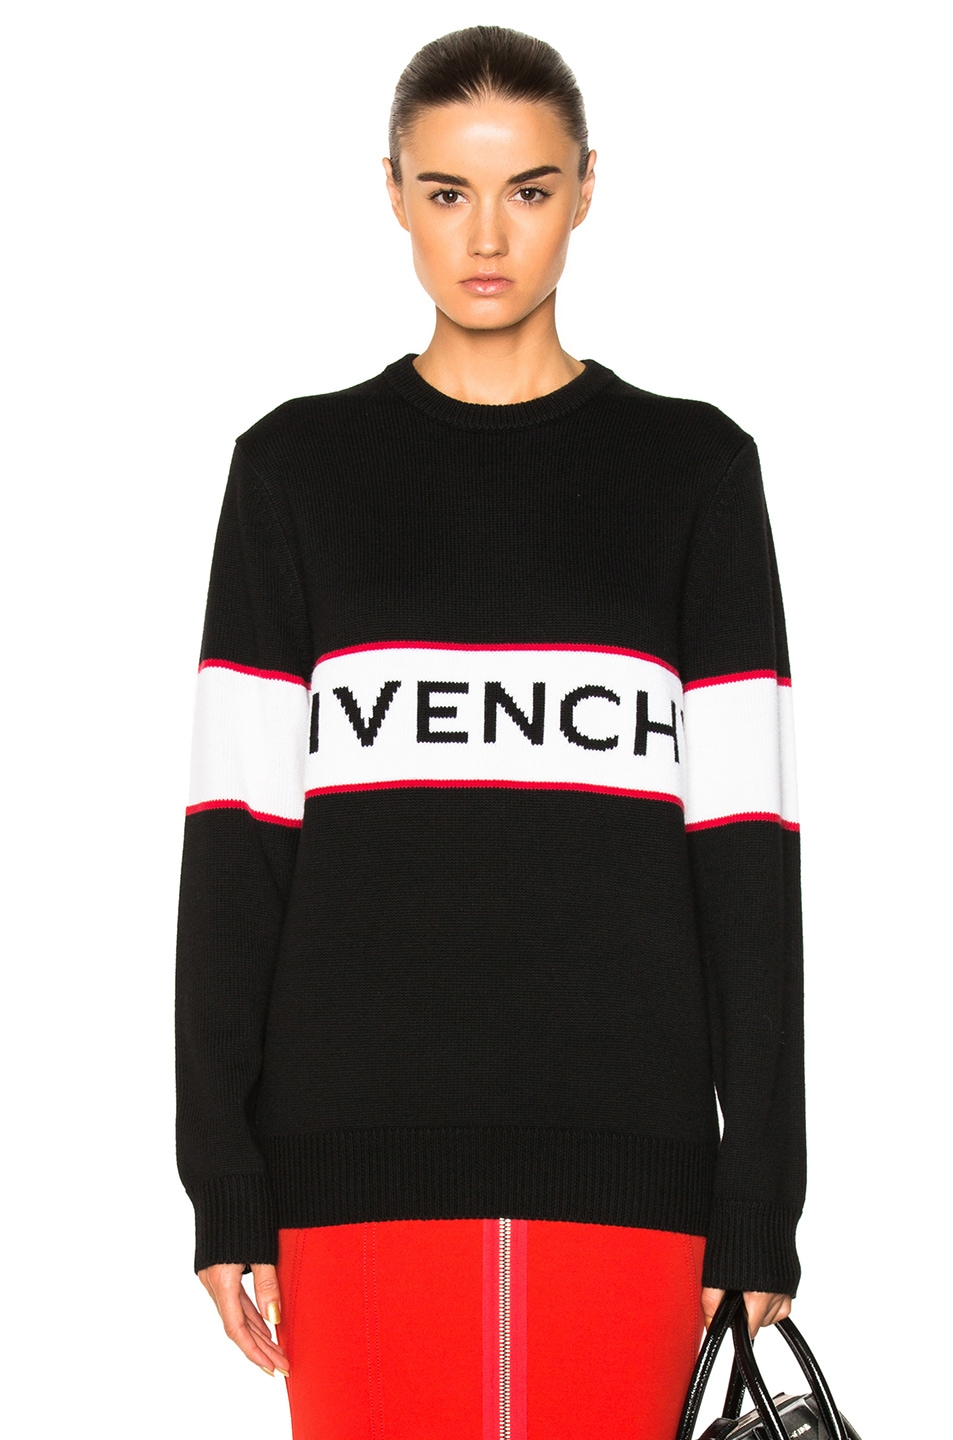 537bc306d8ab3 Image 1 of Givenchy Logo Knit Sweater in Black